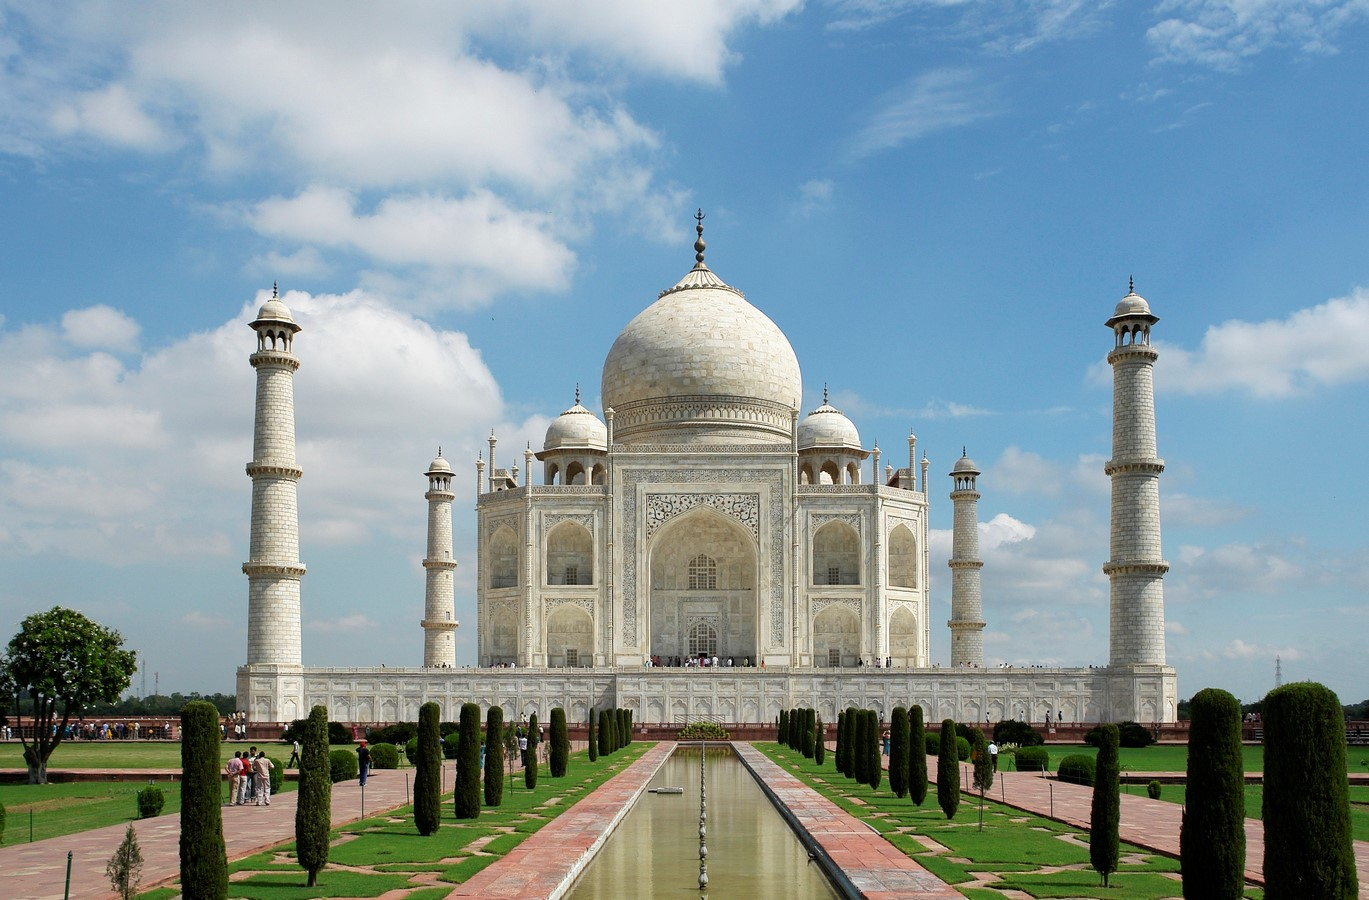 What can Indian structural marvels teach architects - Sheet6